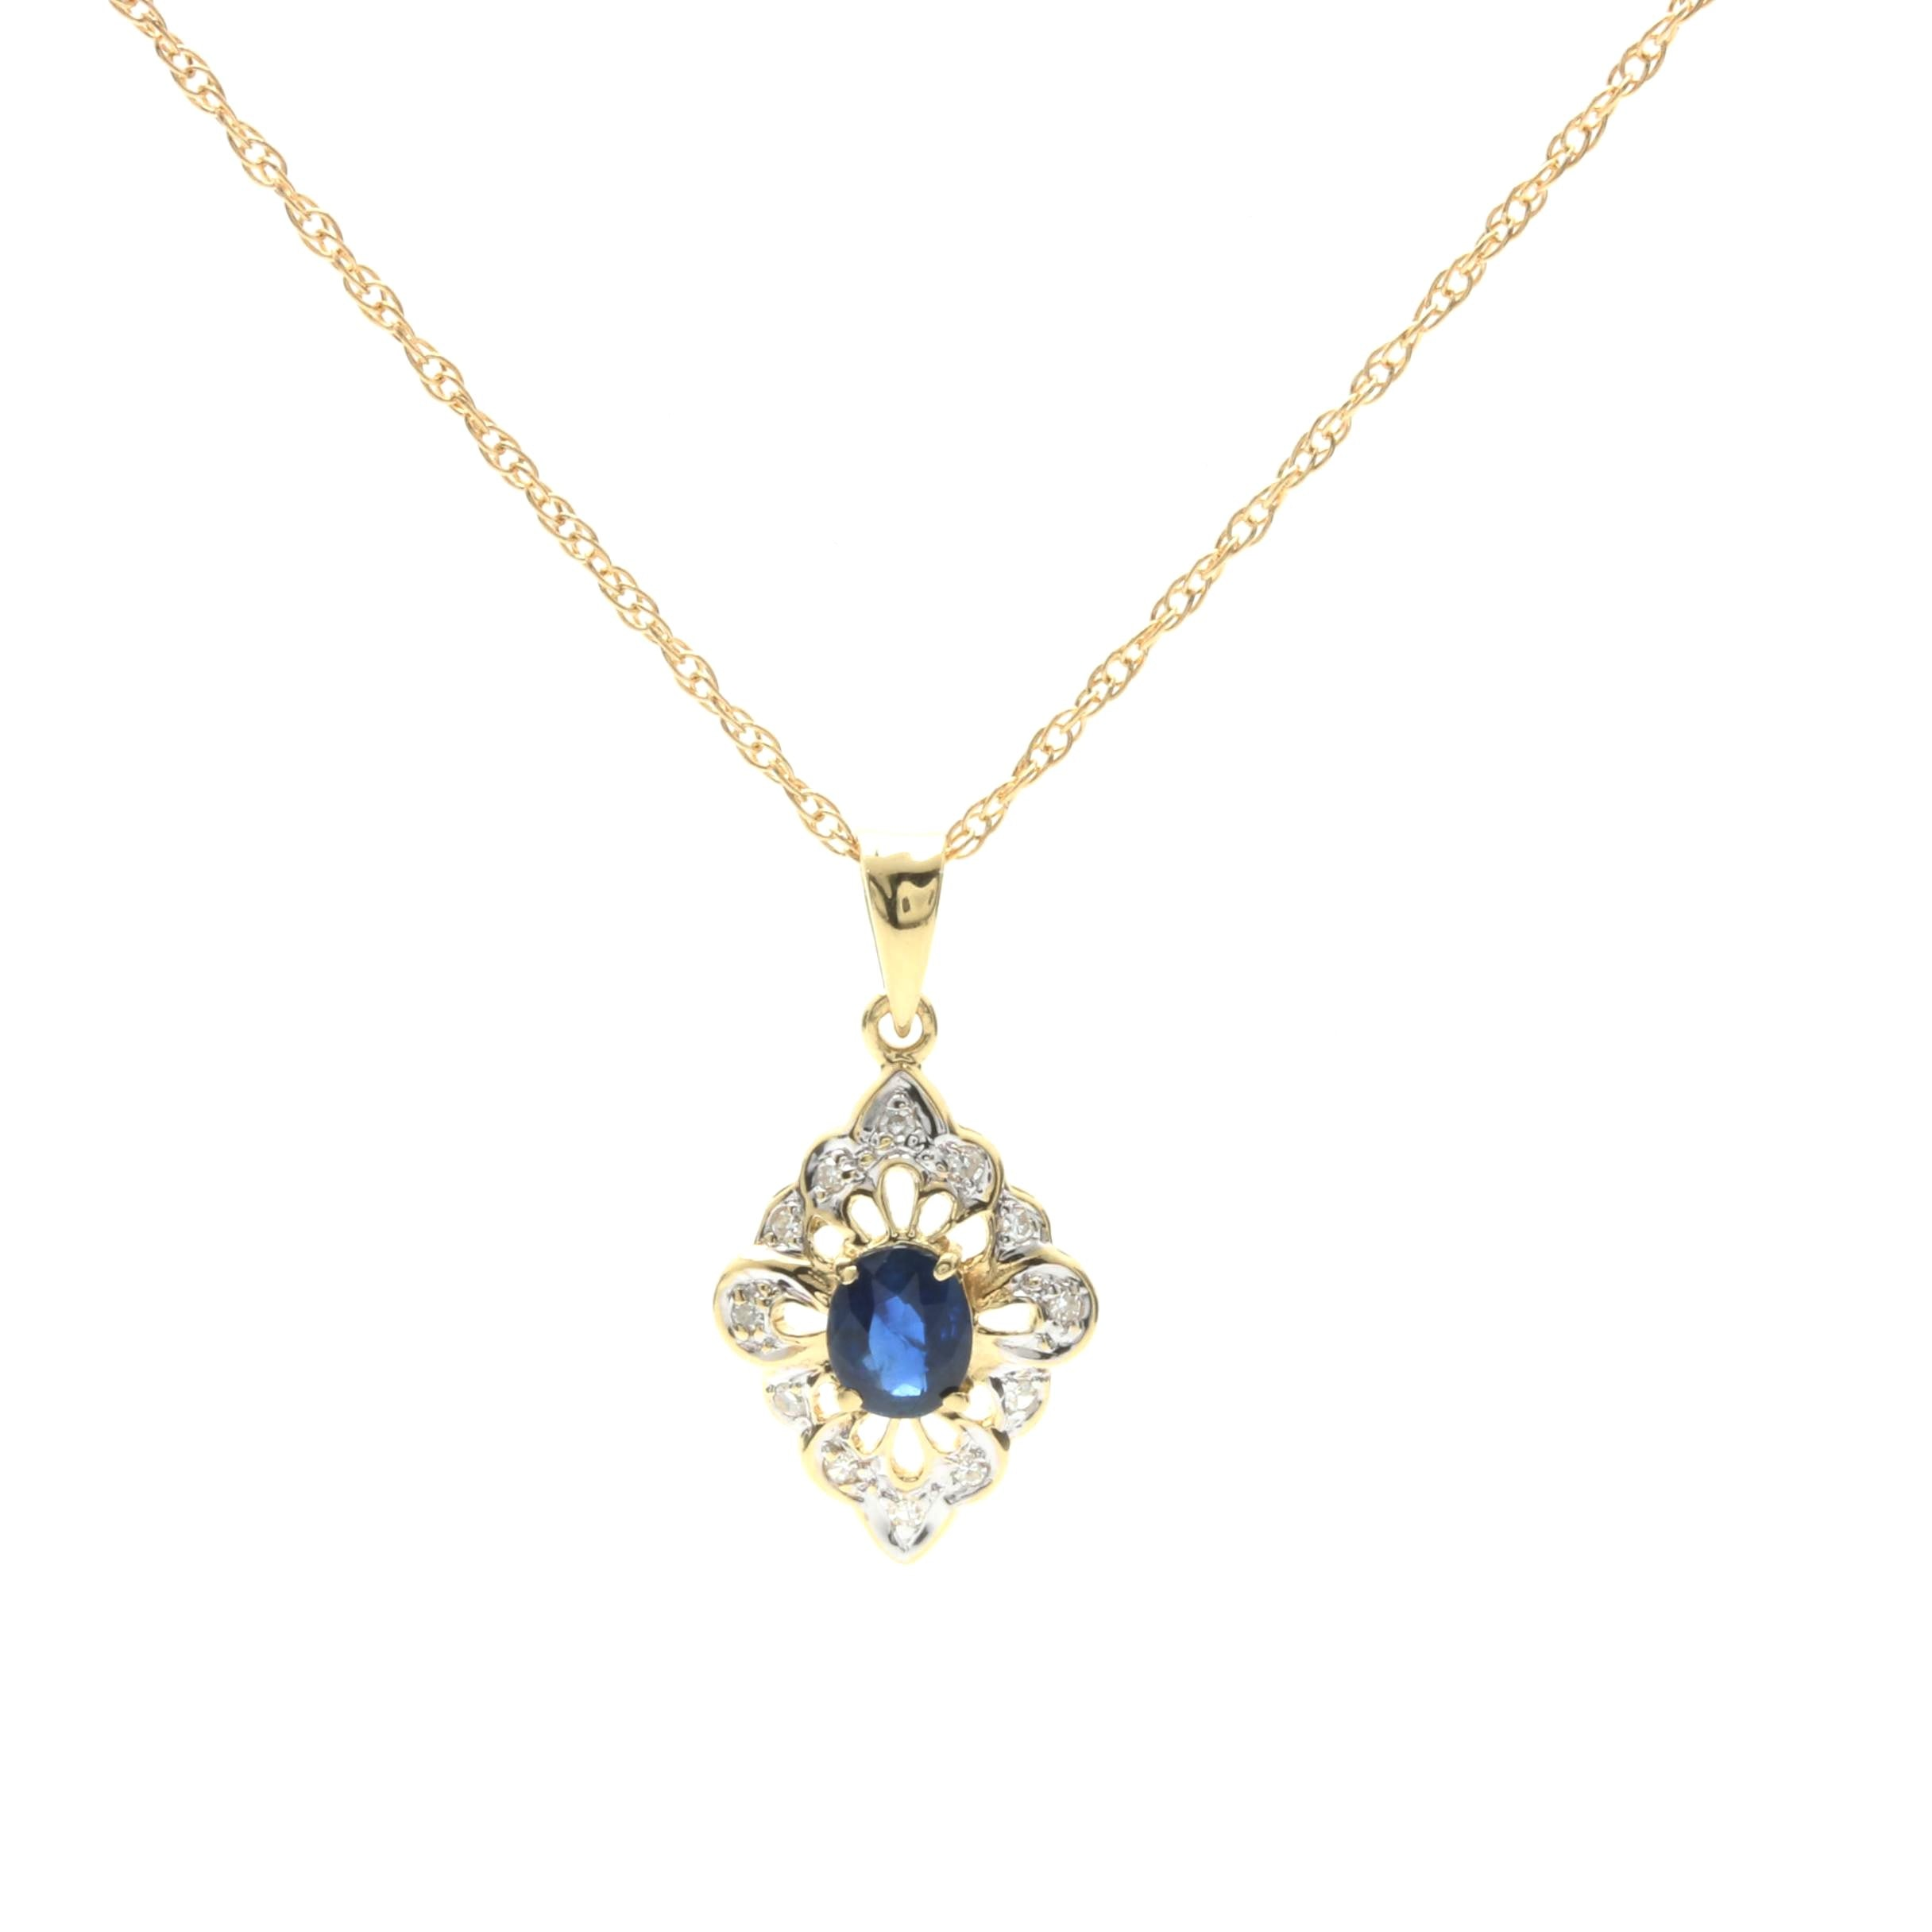 14K Yellow Gold Sapphire and Diamond Floral Necklace